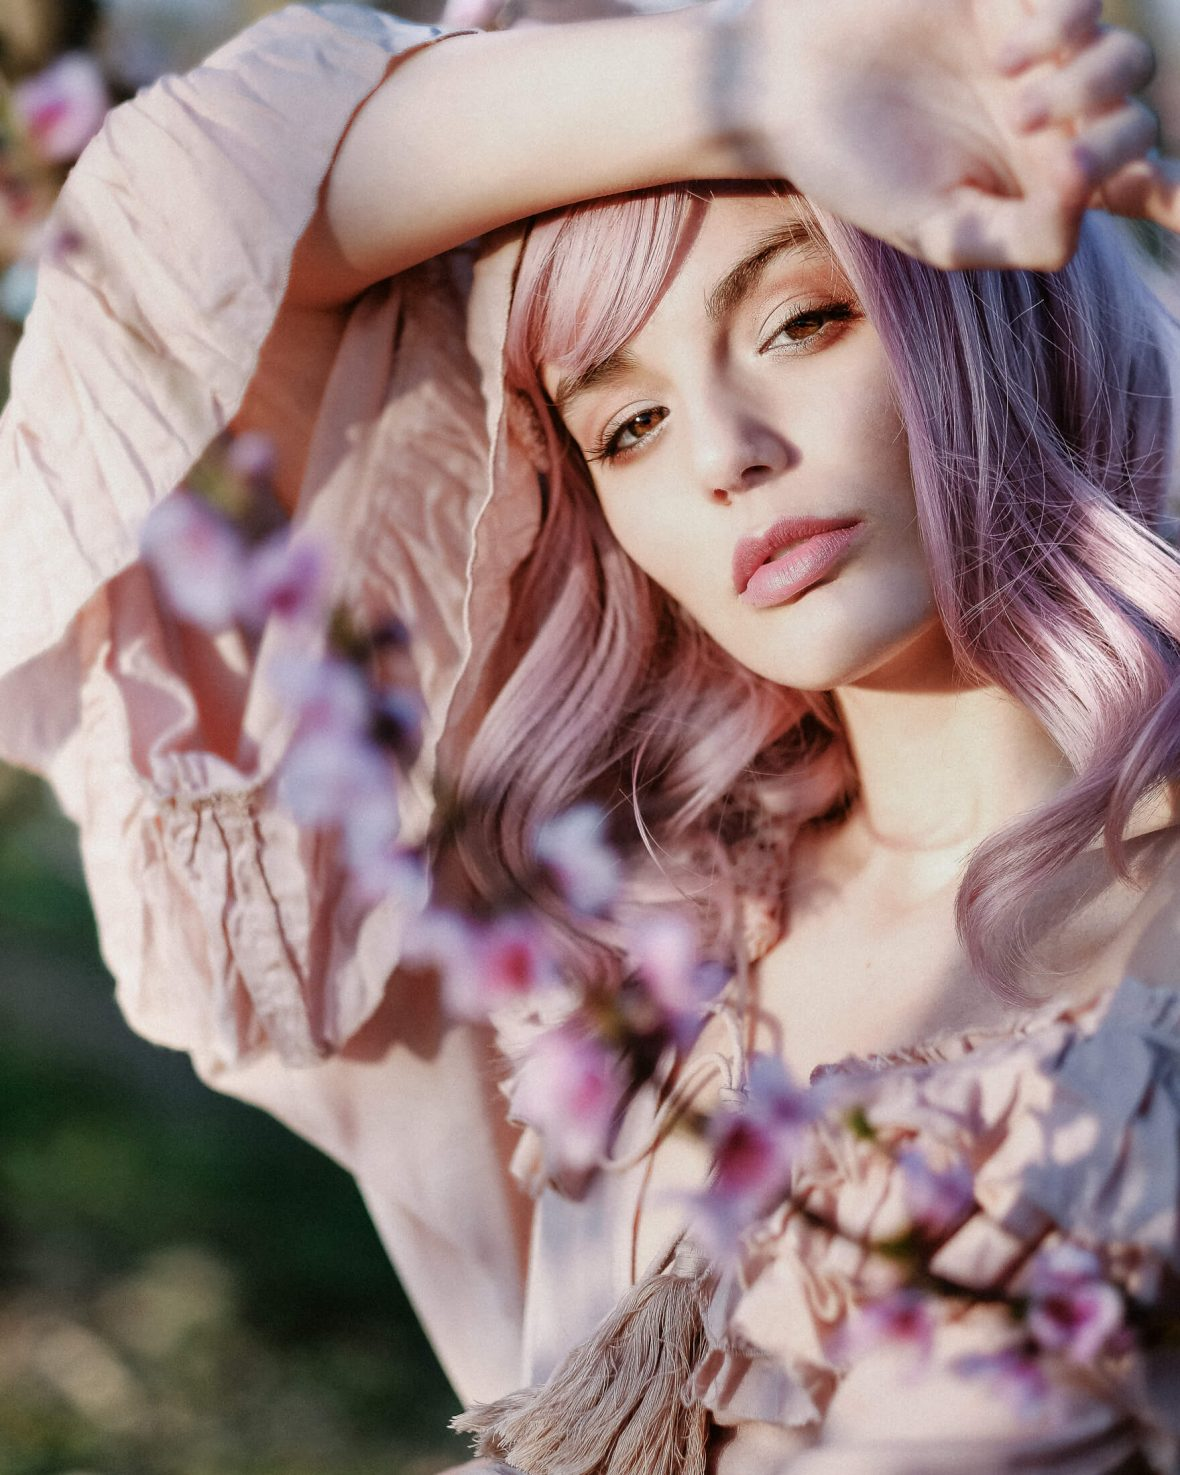 Mallorca fashion shooting wearing all pink in almond blossoms